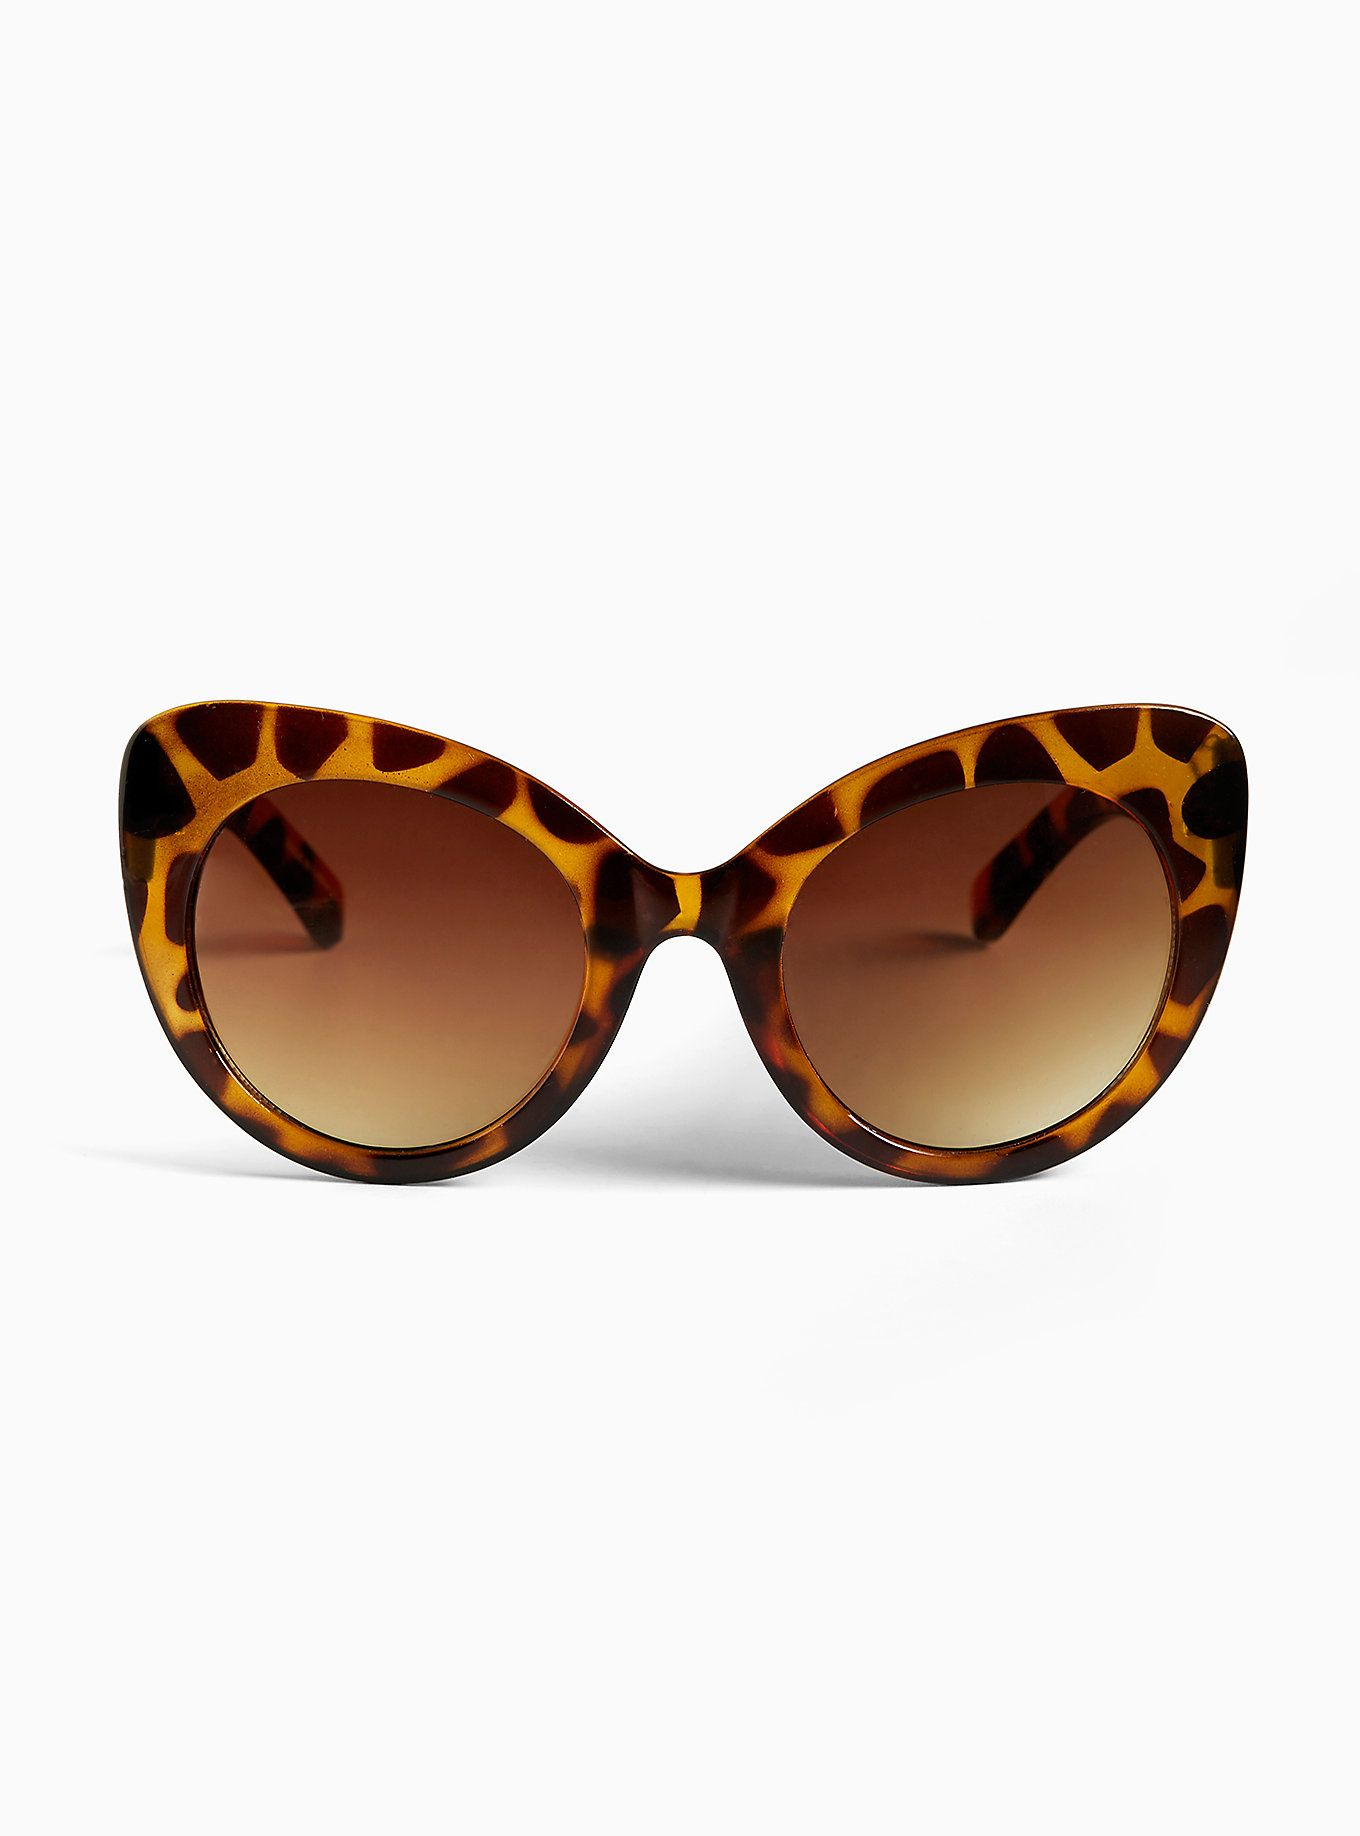 27a0b244dd These tortoise print shades are oversize and over the top in the best way  possible with a tortoise print and cat eye…